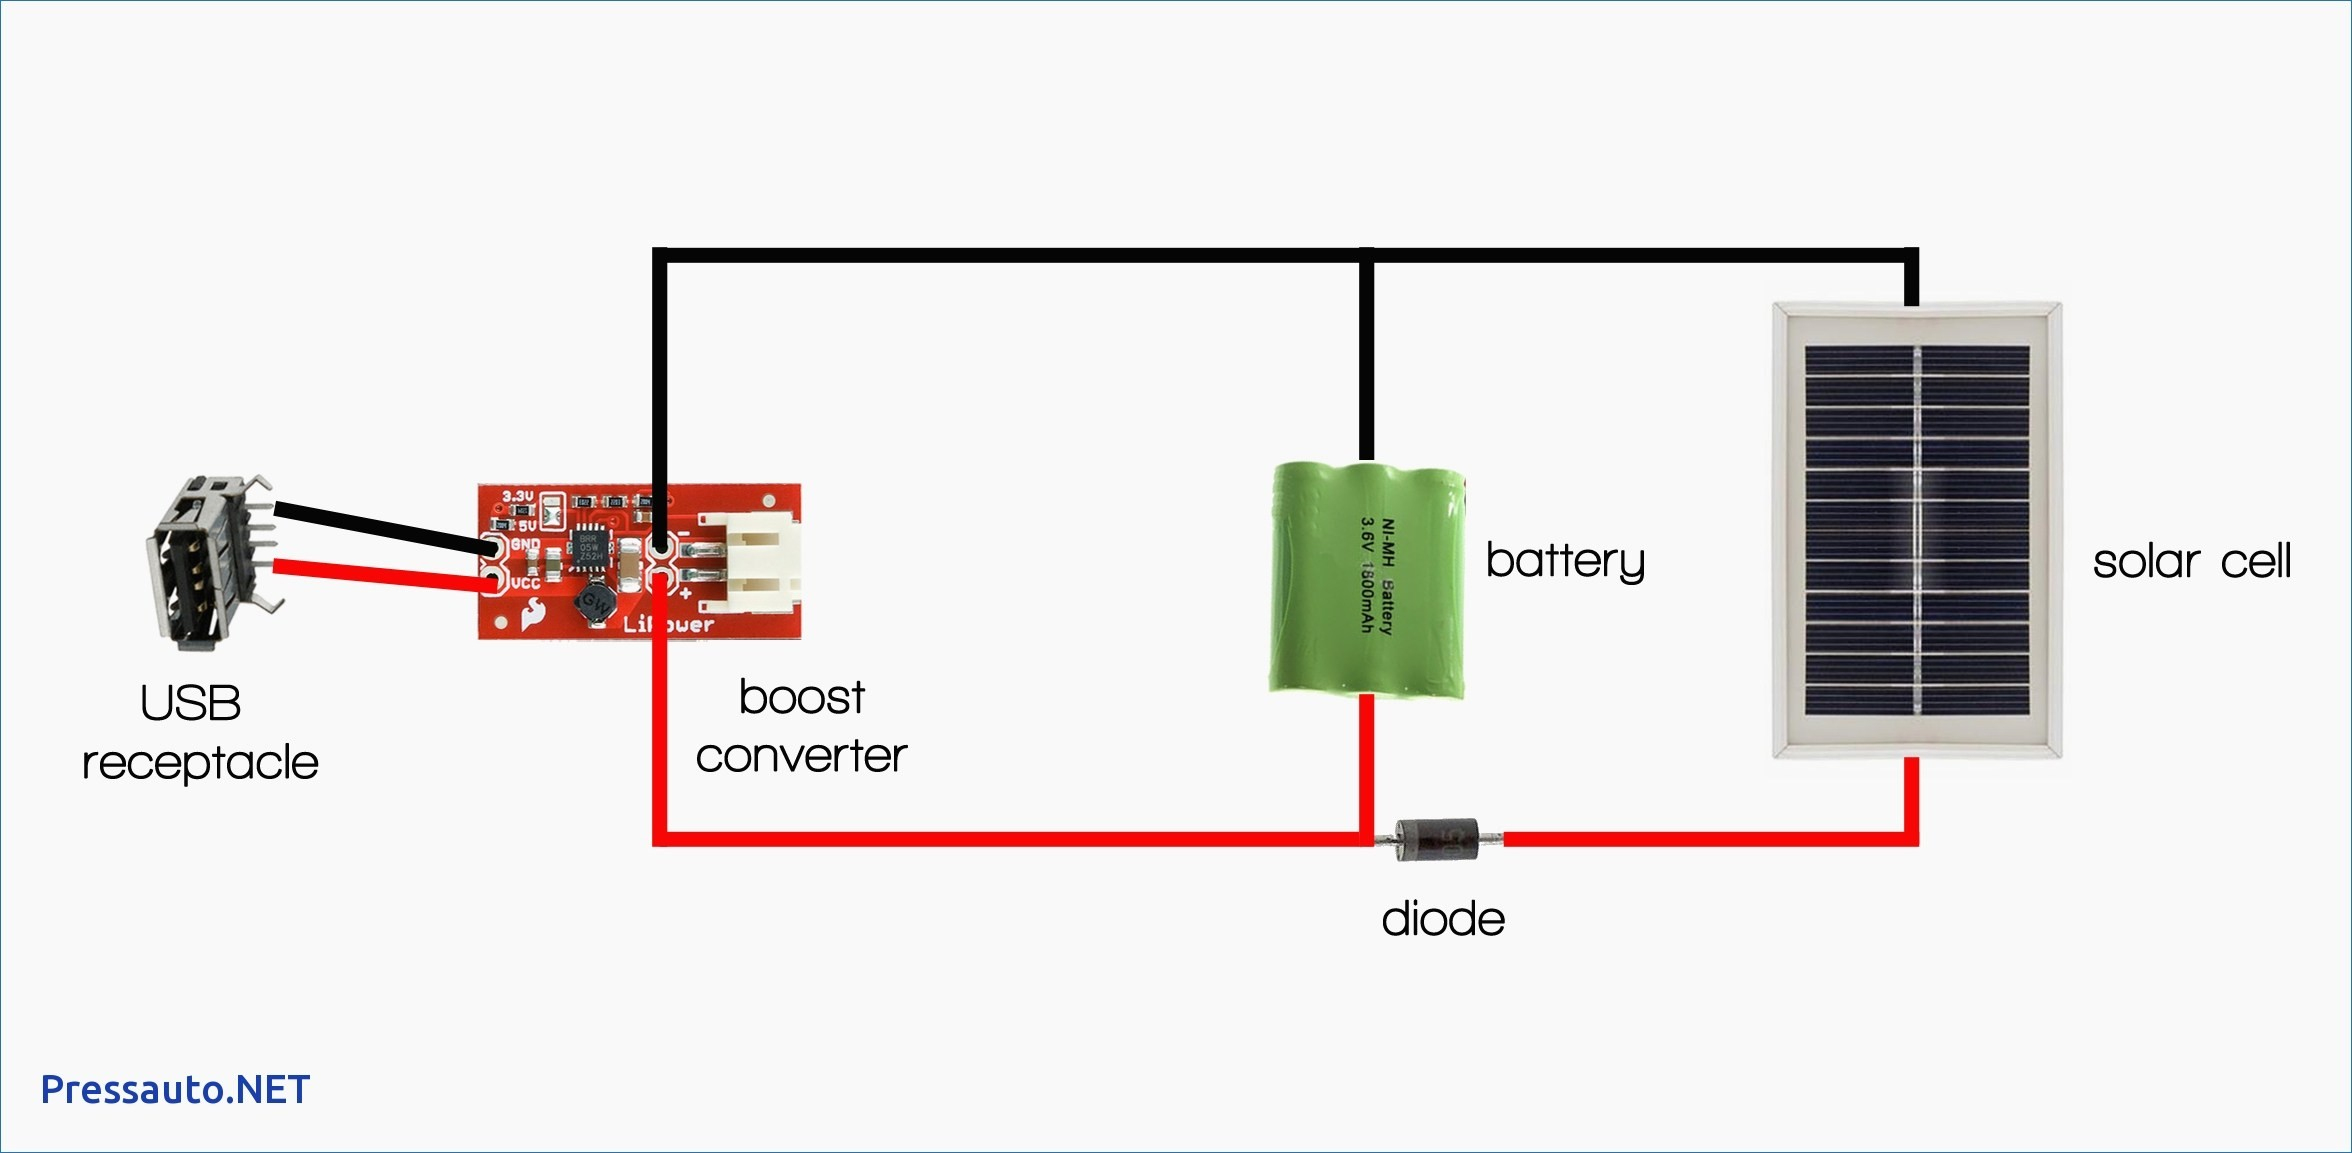 Micro Usb Wiring Diagram | Wiring Library - Wiring Diagram Of A Usb Cable